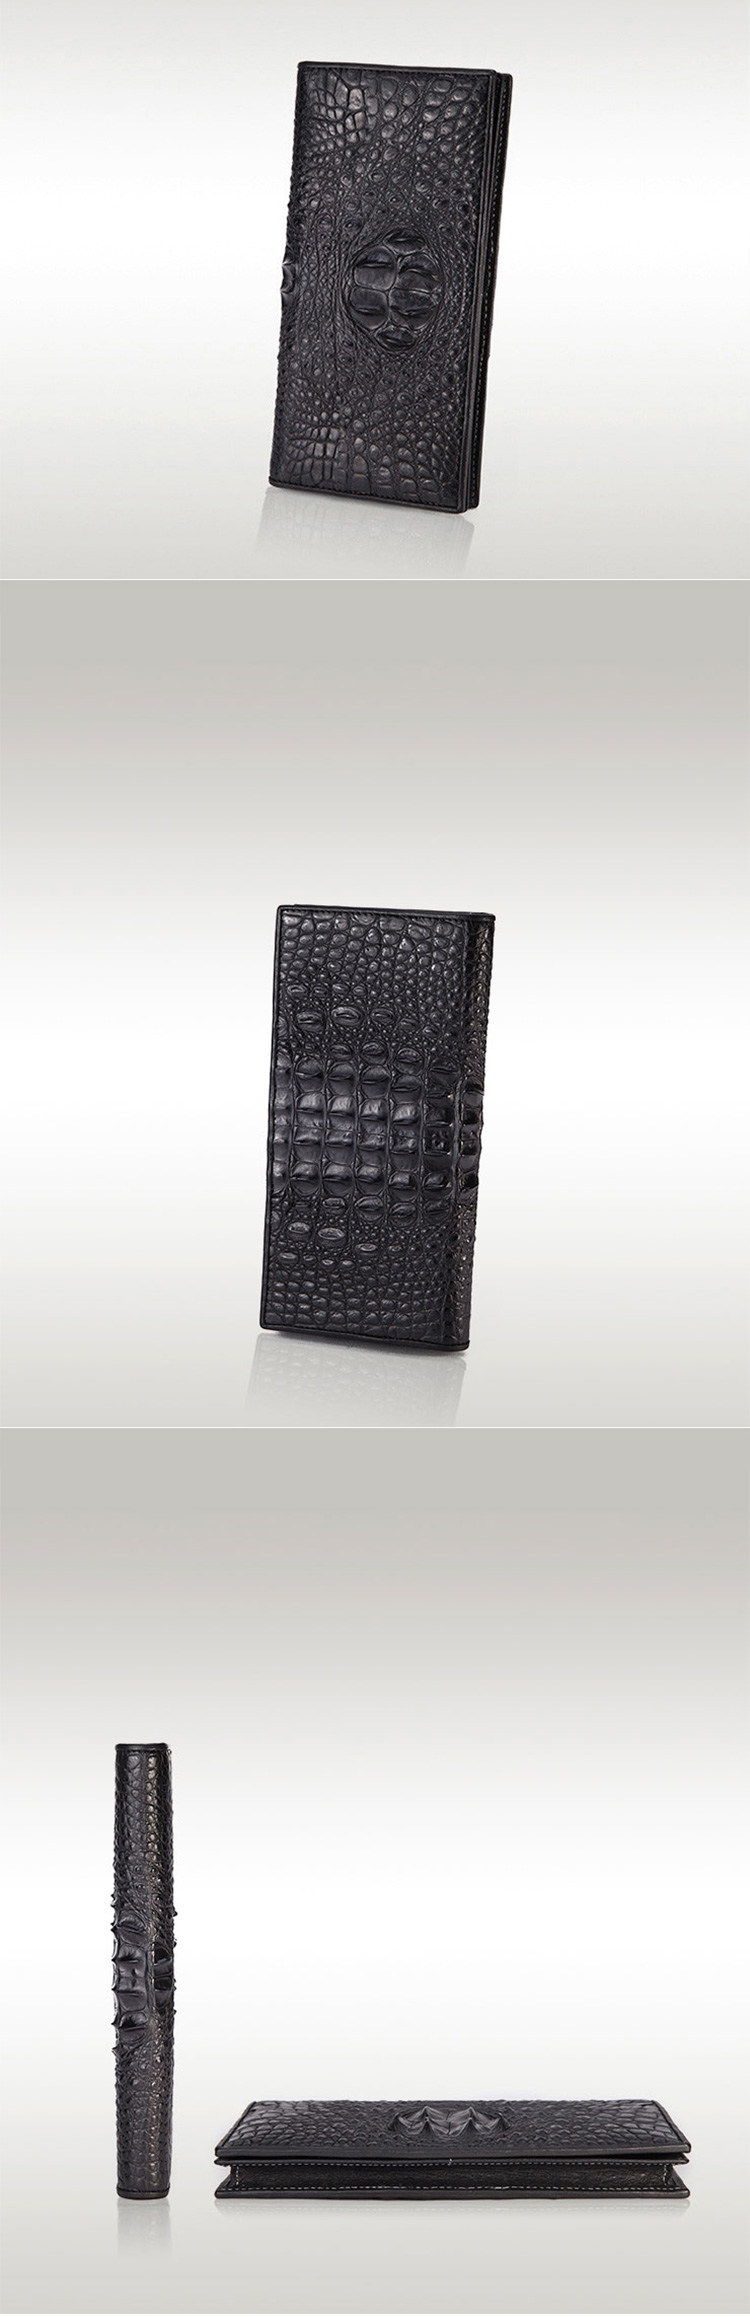 crocodile skin wallet3.jpg